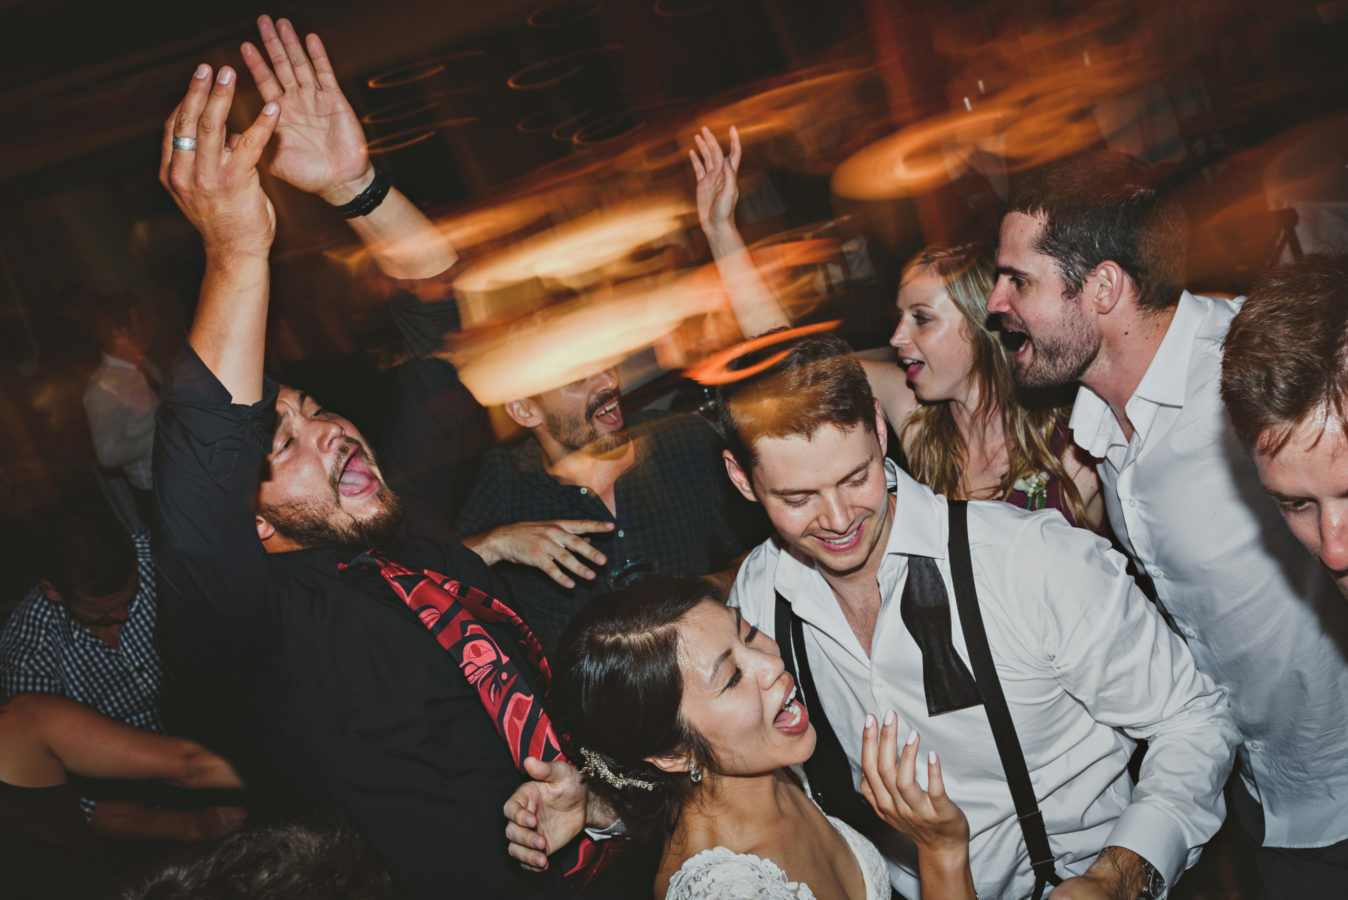 mixed race couple and friends laughing and partying on the dance floor